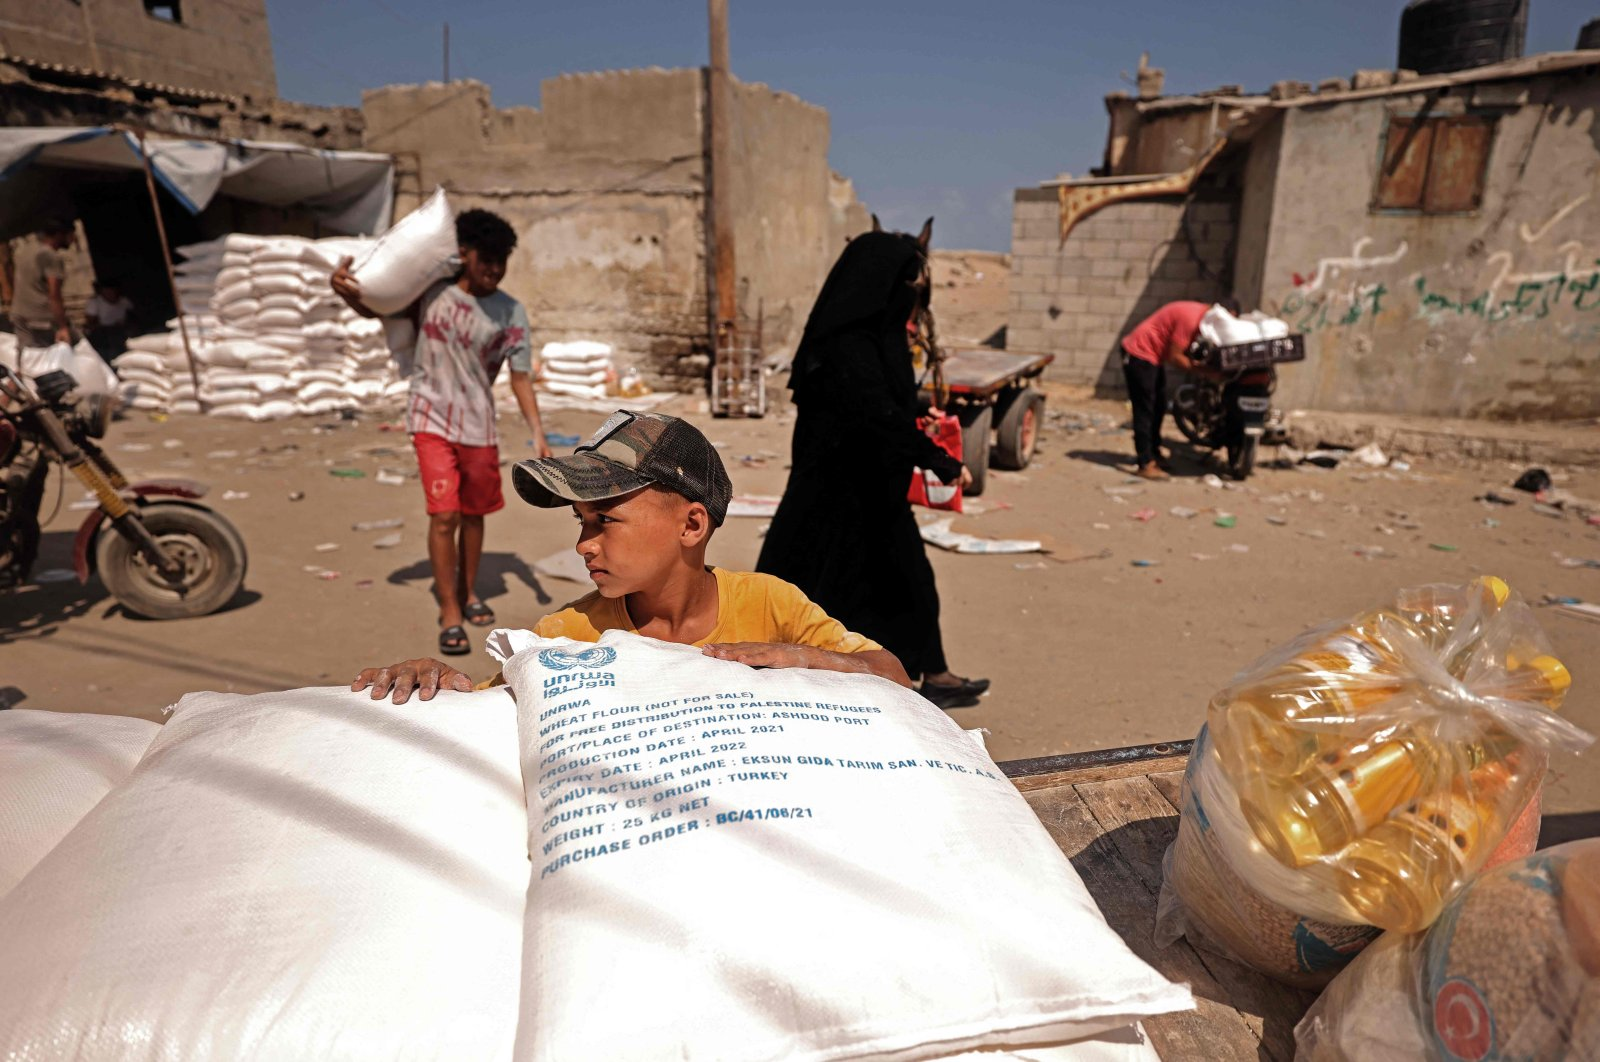 Palestinians collect food aid at a distribution center run by United Nations Relief and Works Agency (UNRWA), in Gaza City on July 26, 2021. (AFP Photo)